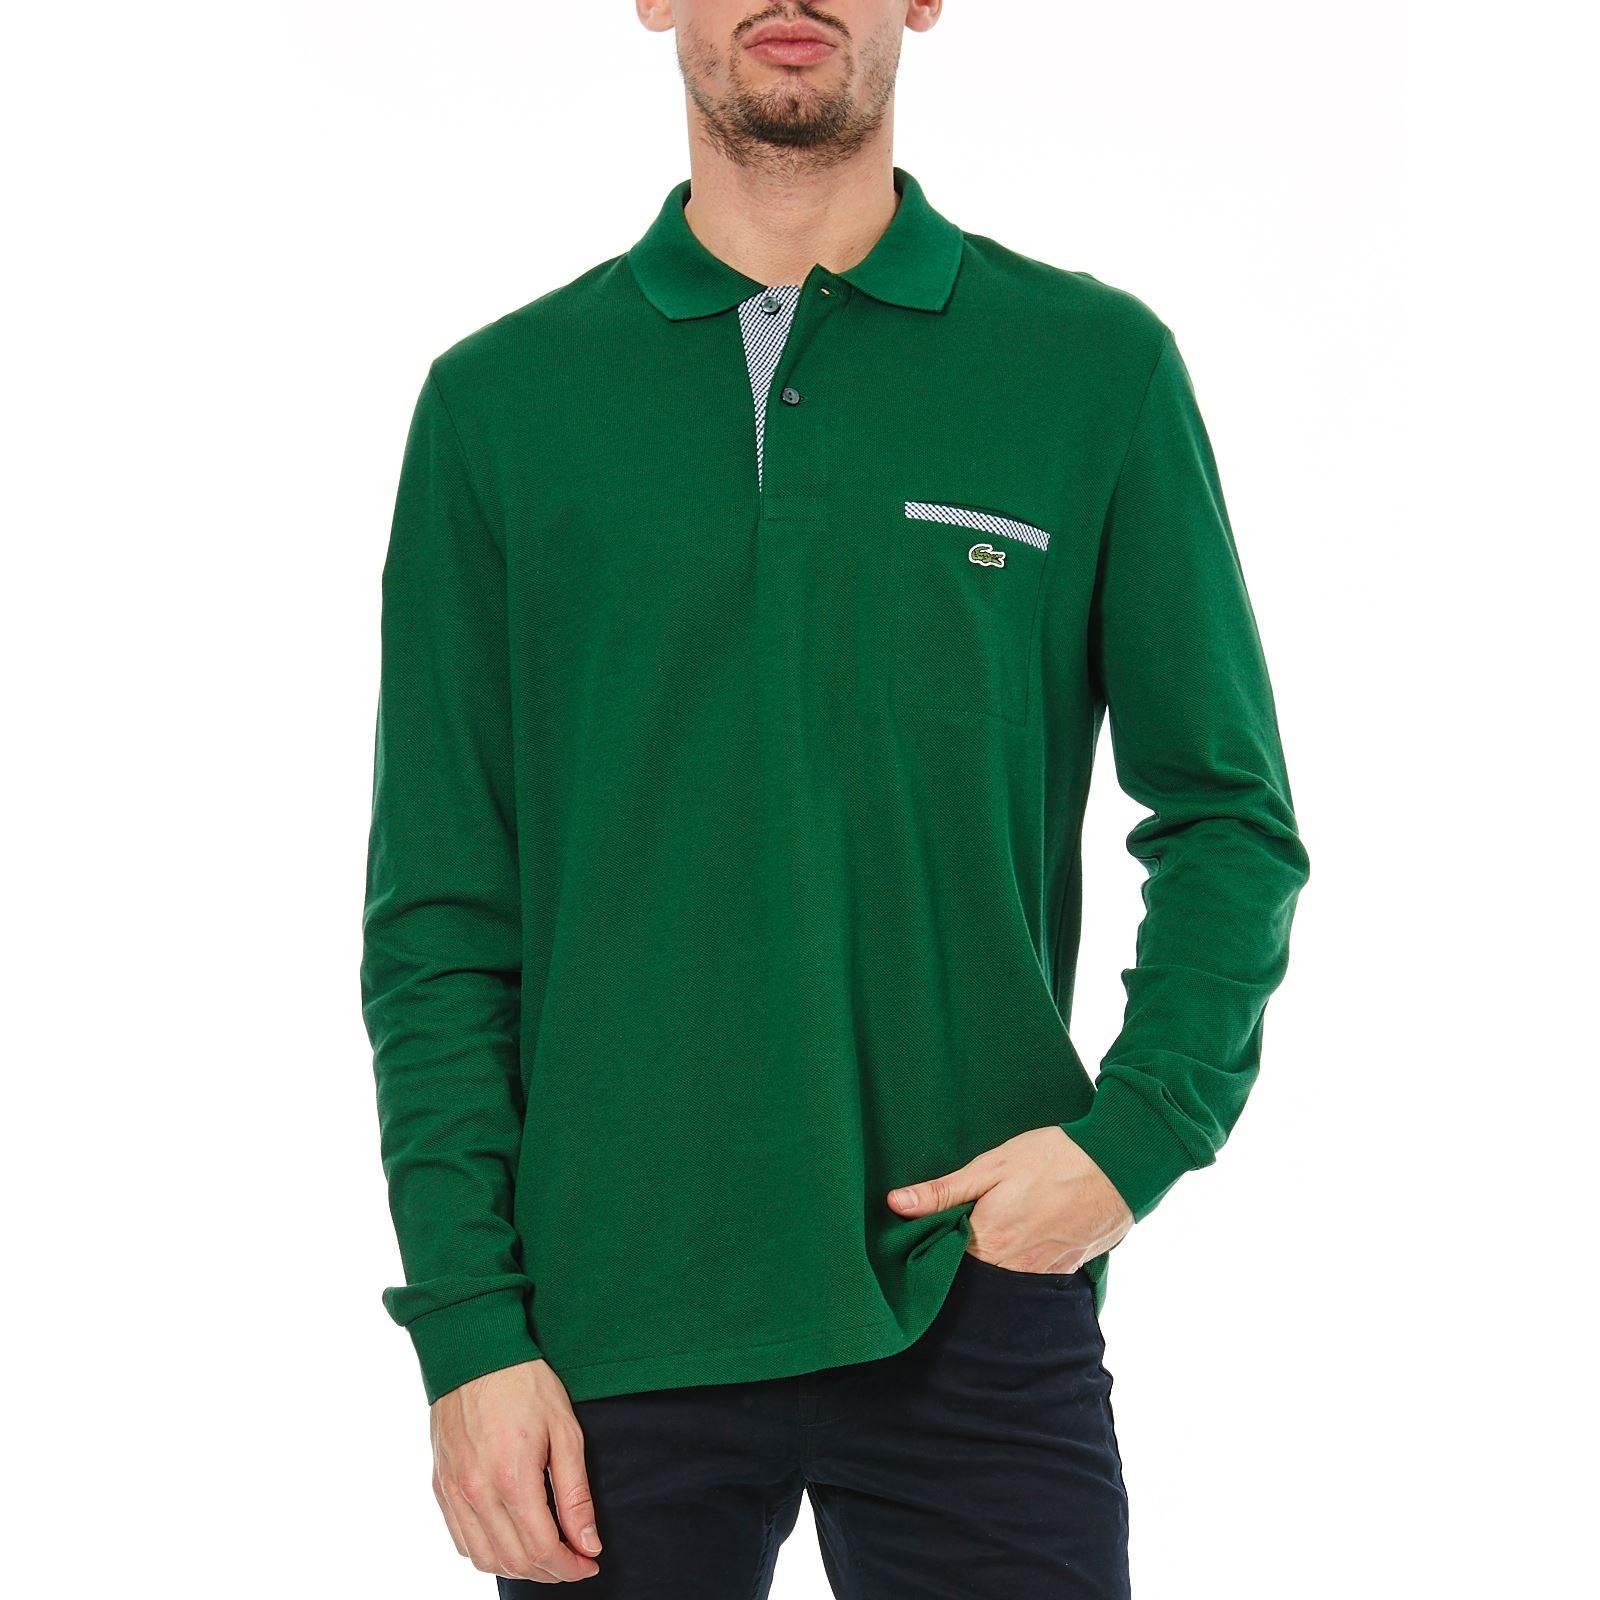 Polo Longues Manches Brandalley Lacoste Blanc FqwPxPY